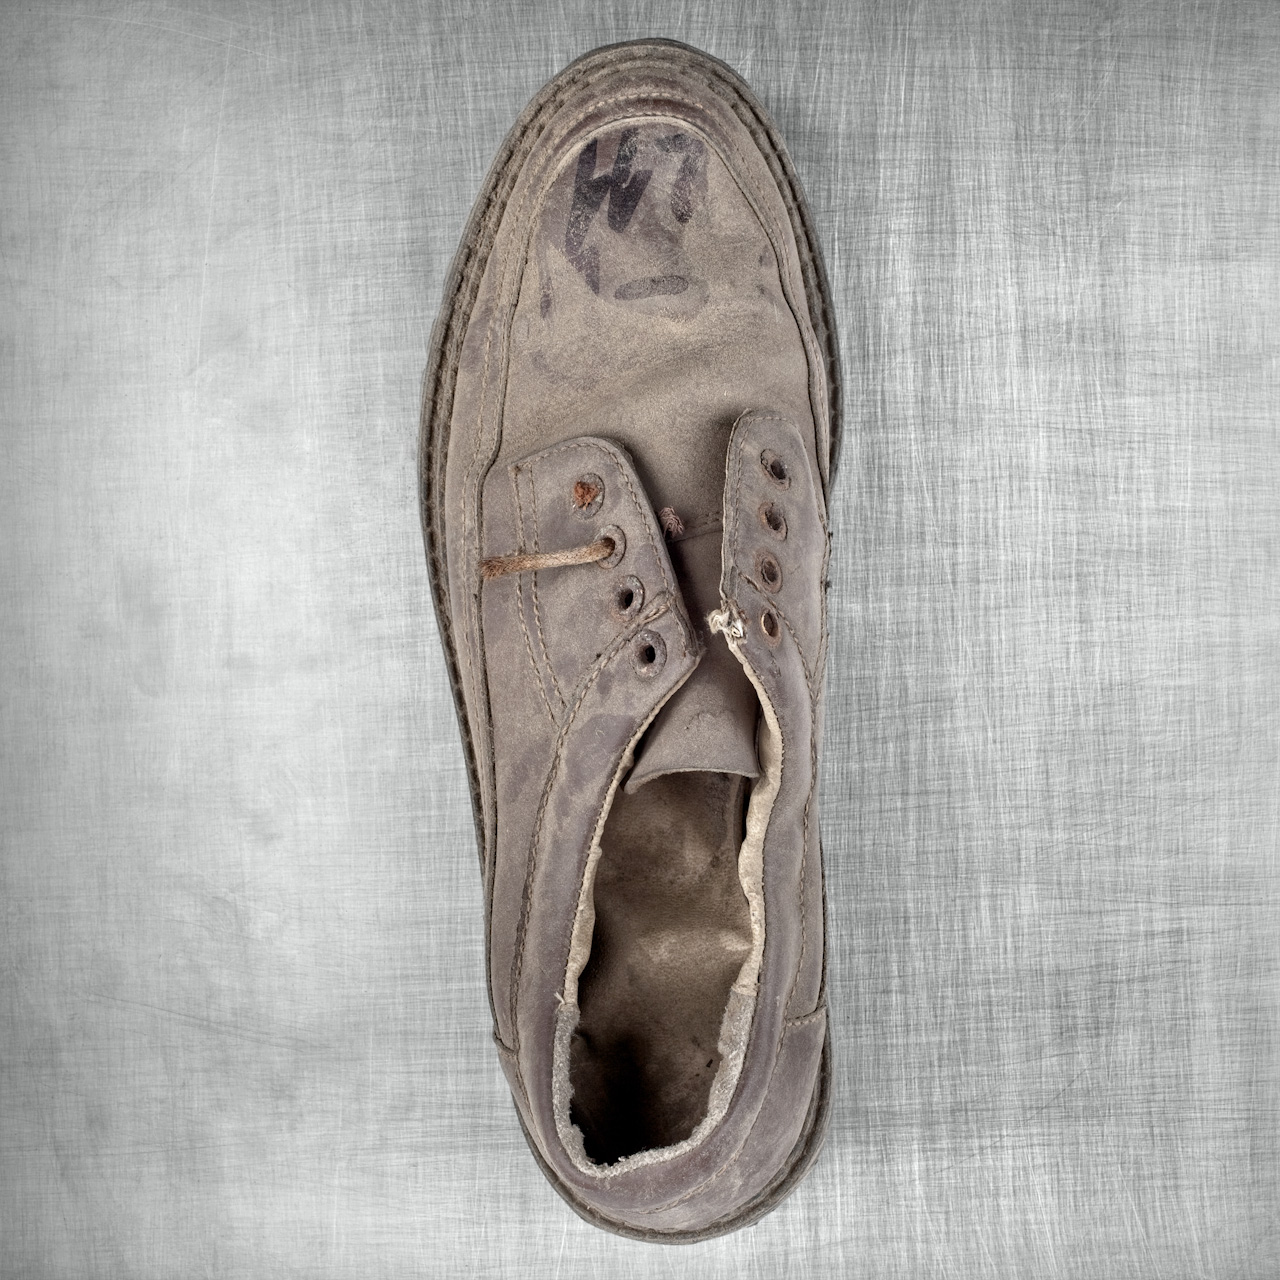 Shoe, from Quest for Identity. Photo: Ziyah Gafić